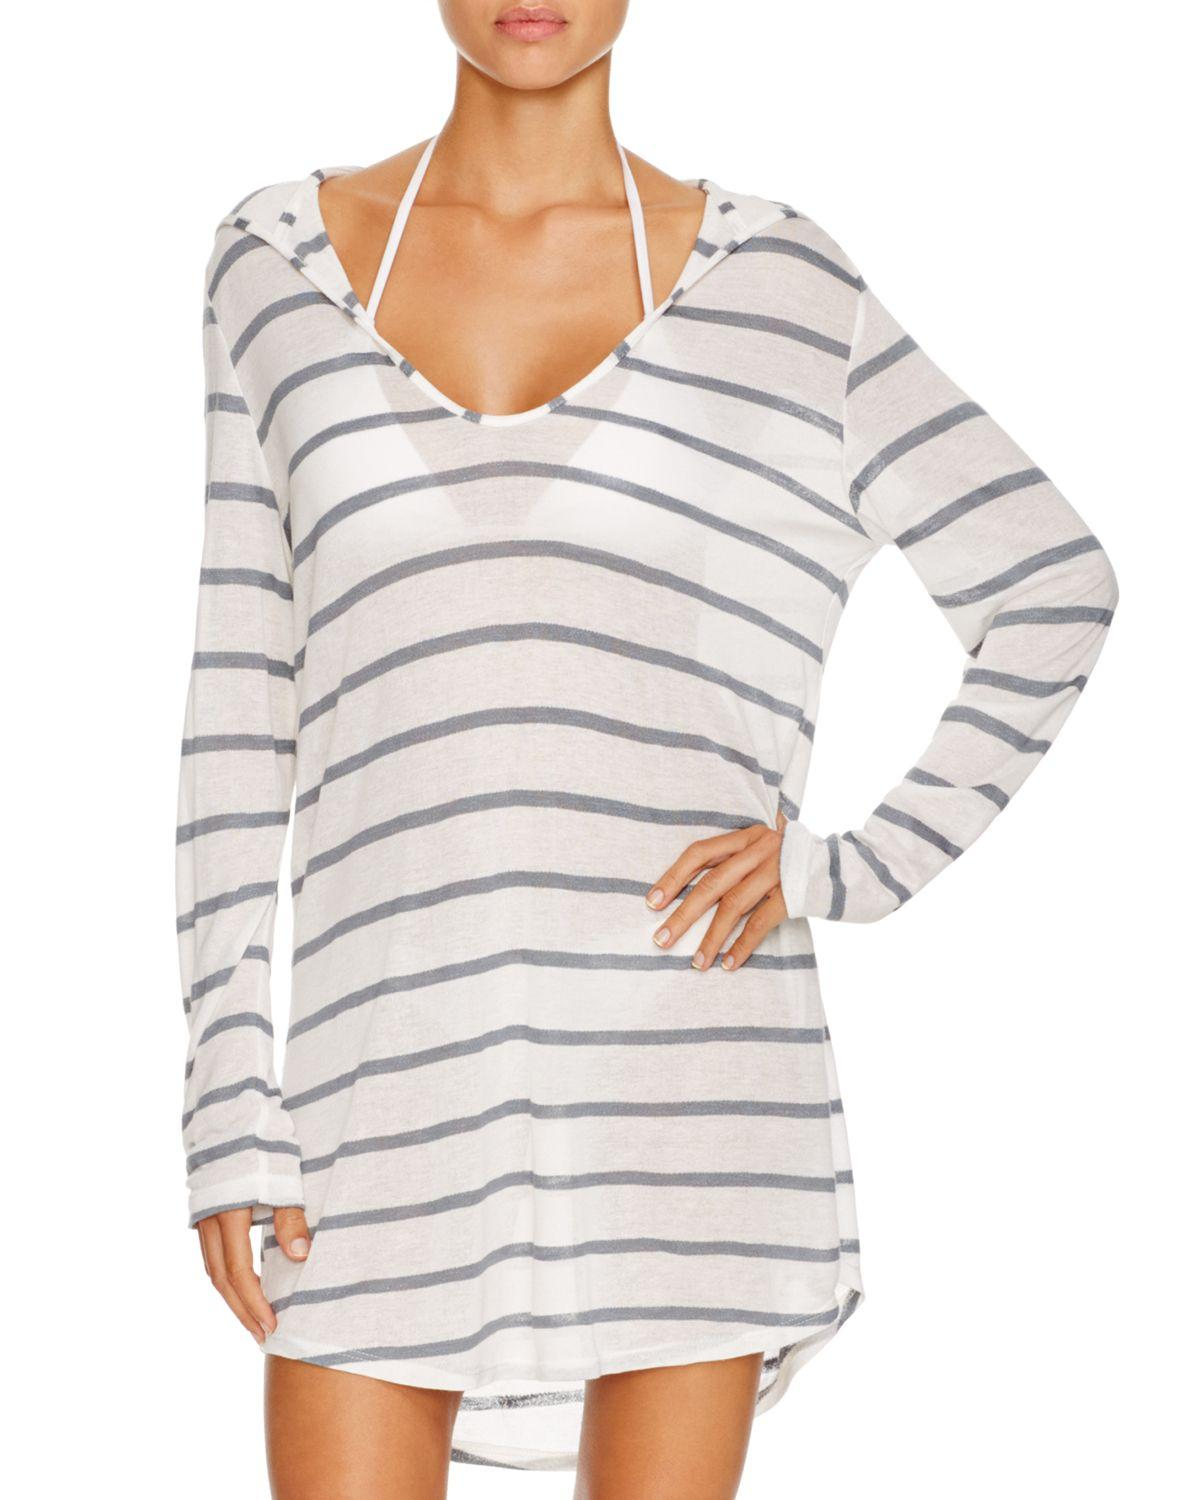 f2e5d4aa98 Lyst - Splendid Hooded Knit Tunic Swim Cover-up in Gray